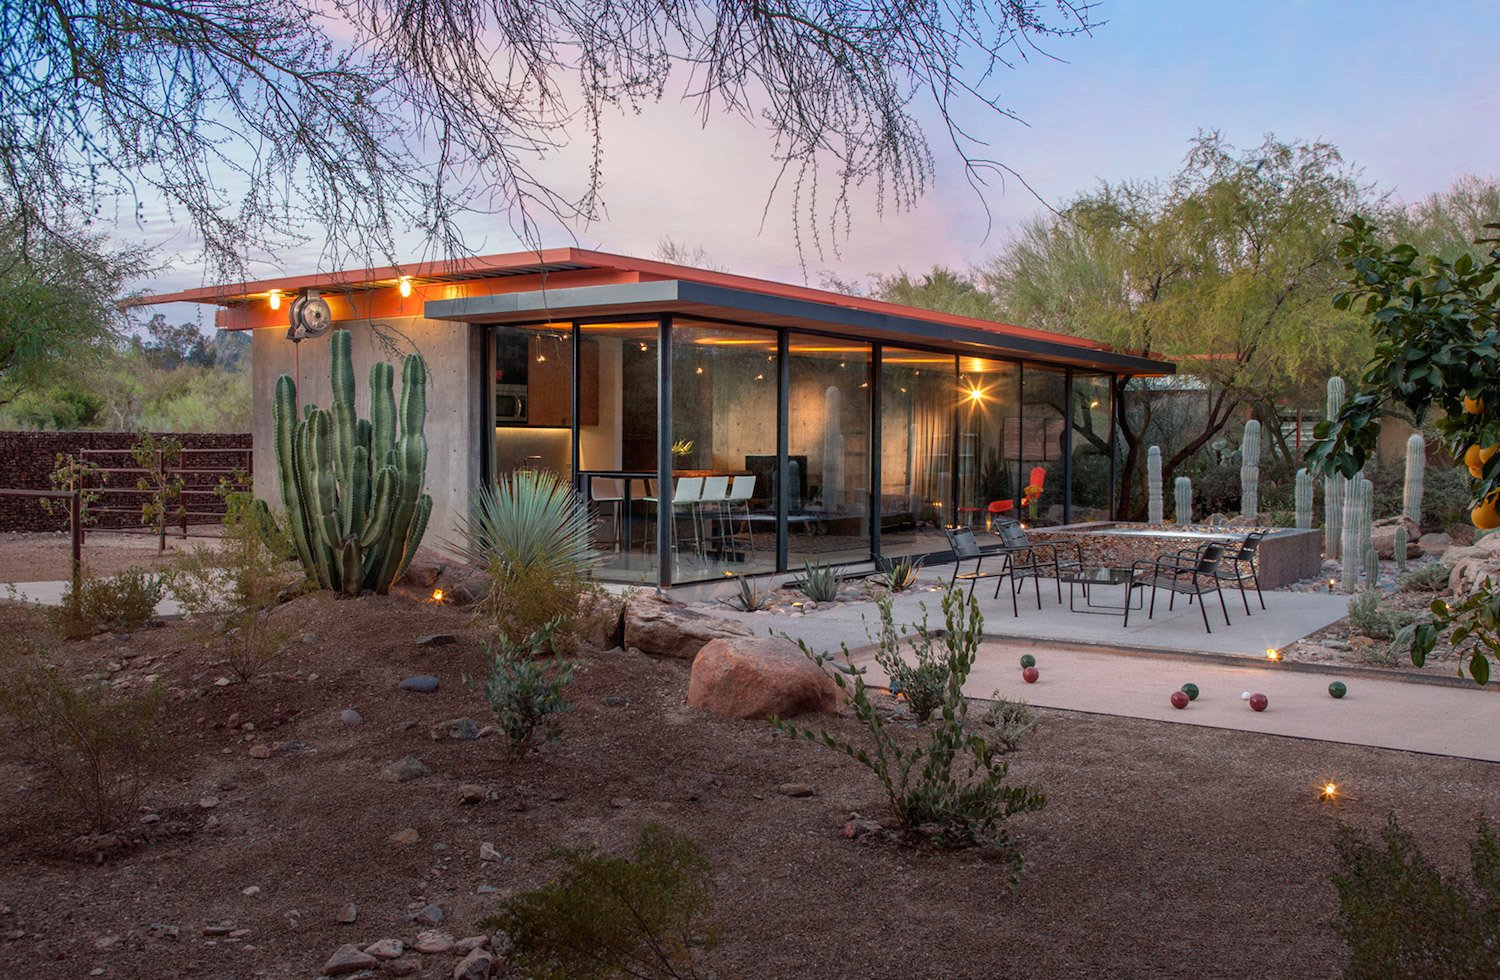 Outdoor, Desert, Hardscapes, Boulders, Trees, Concrete Fences, Wall, and Landscape Lighting Phoenix design-build firm The Construction Zone renovated an old concrete-and-steel barn, turning it into a sleek new guesthouse with an open-plan, three-room layout. Completed for approximately $300,000, the 790-square-foot adaptive reuse project carefully preserves the character of the existing structure while upgrading it to match the modern aesthetic of the main residence.  Photos from An Old Horse Barn Is Repurposed as a Chic Desert Guesthouse